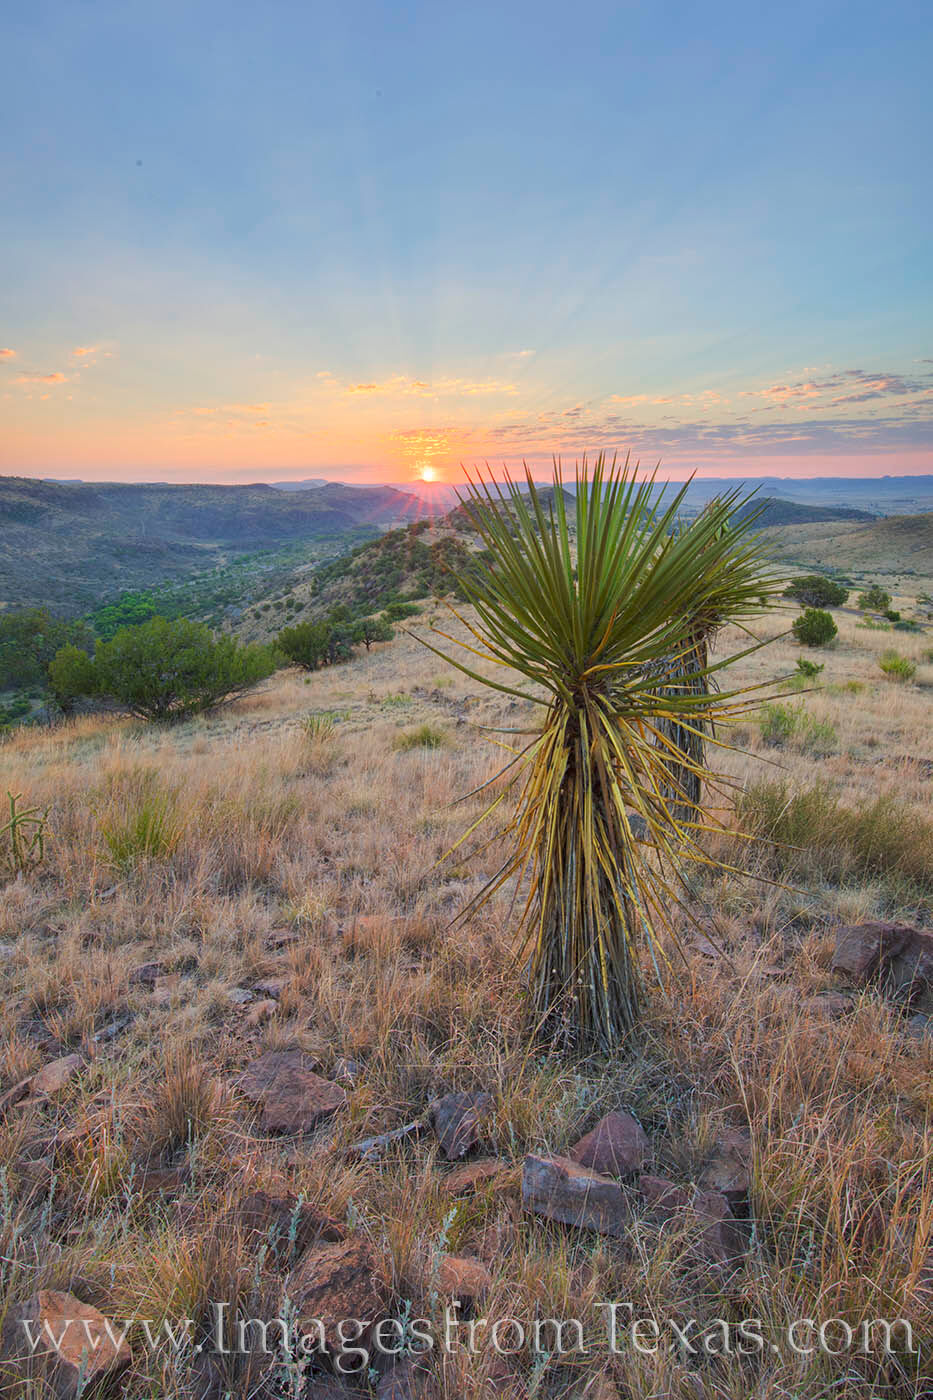 davis mountains, davis mountains state park, fort davis, skyline drive trail, texas state parks, sunrise, texas sunrise, texas hikes, texas landscapes, hiking, texas, yucca, photo